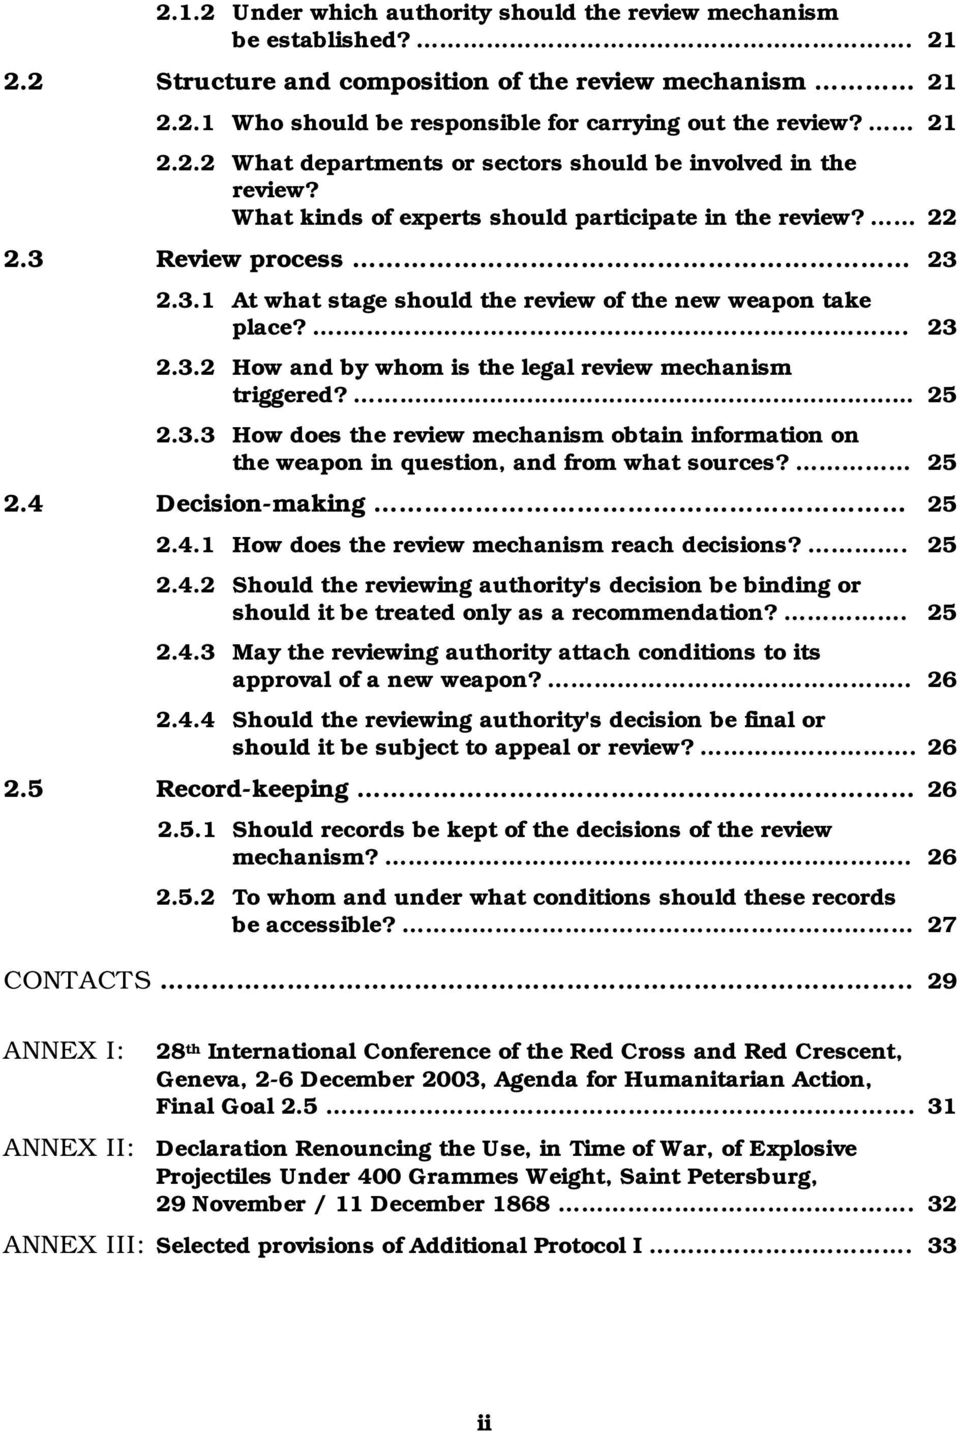 ... 25 2.3.3 How does the review mechanism obtain information on the weapon in question, and from what sources? 25 2.4